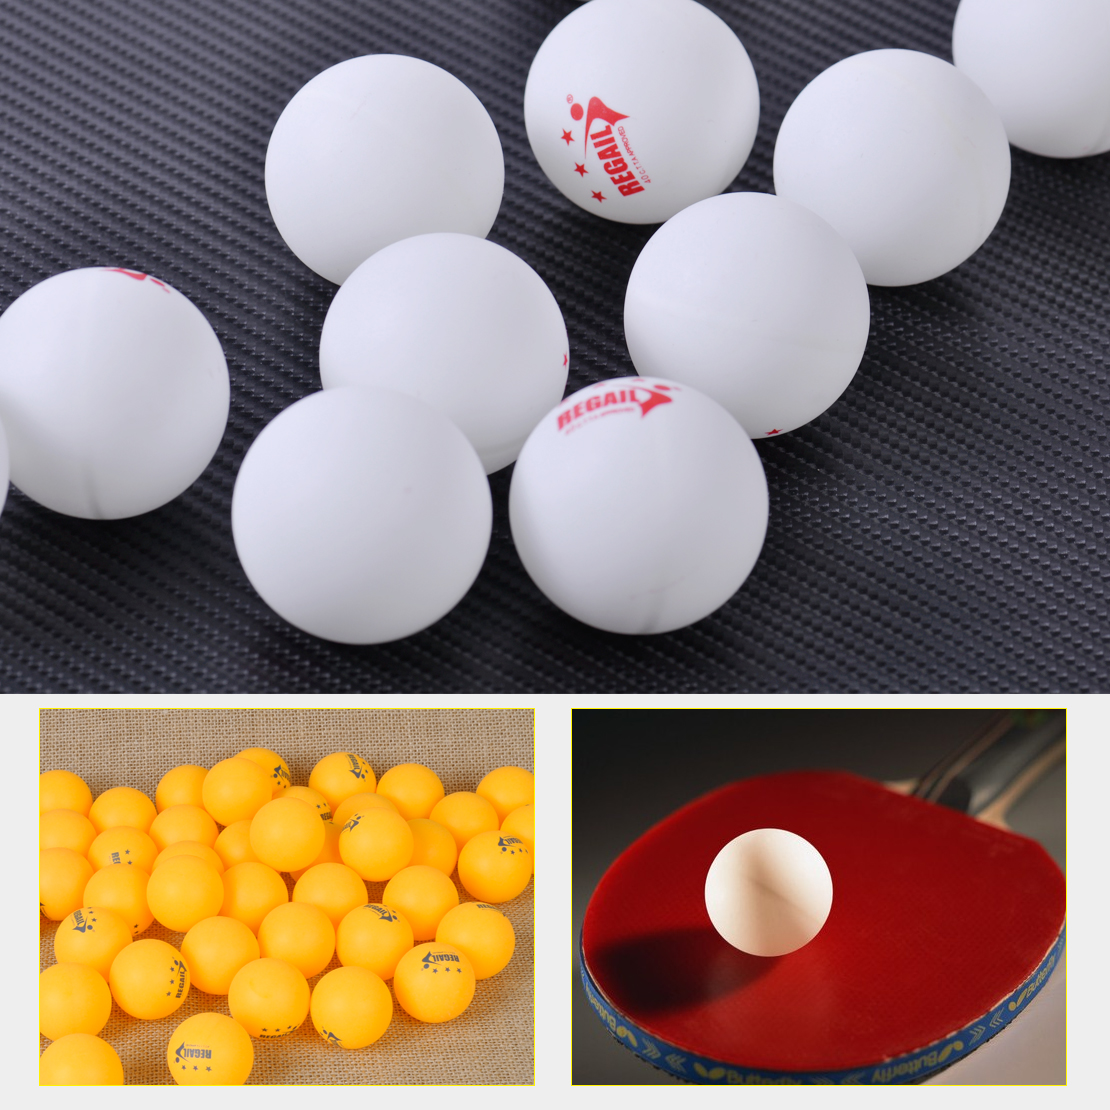 100 stk tischtennis pingpong table tennis ball for 100 table tennis balls